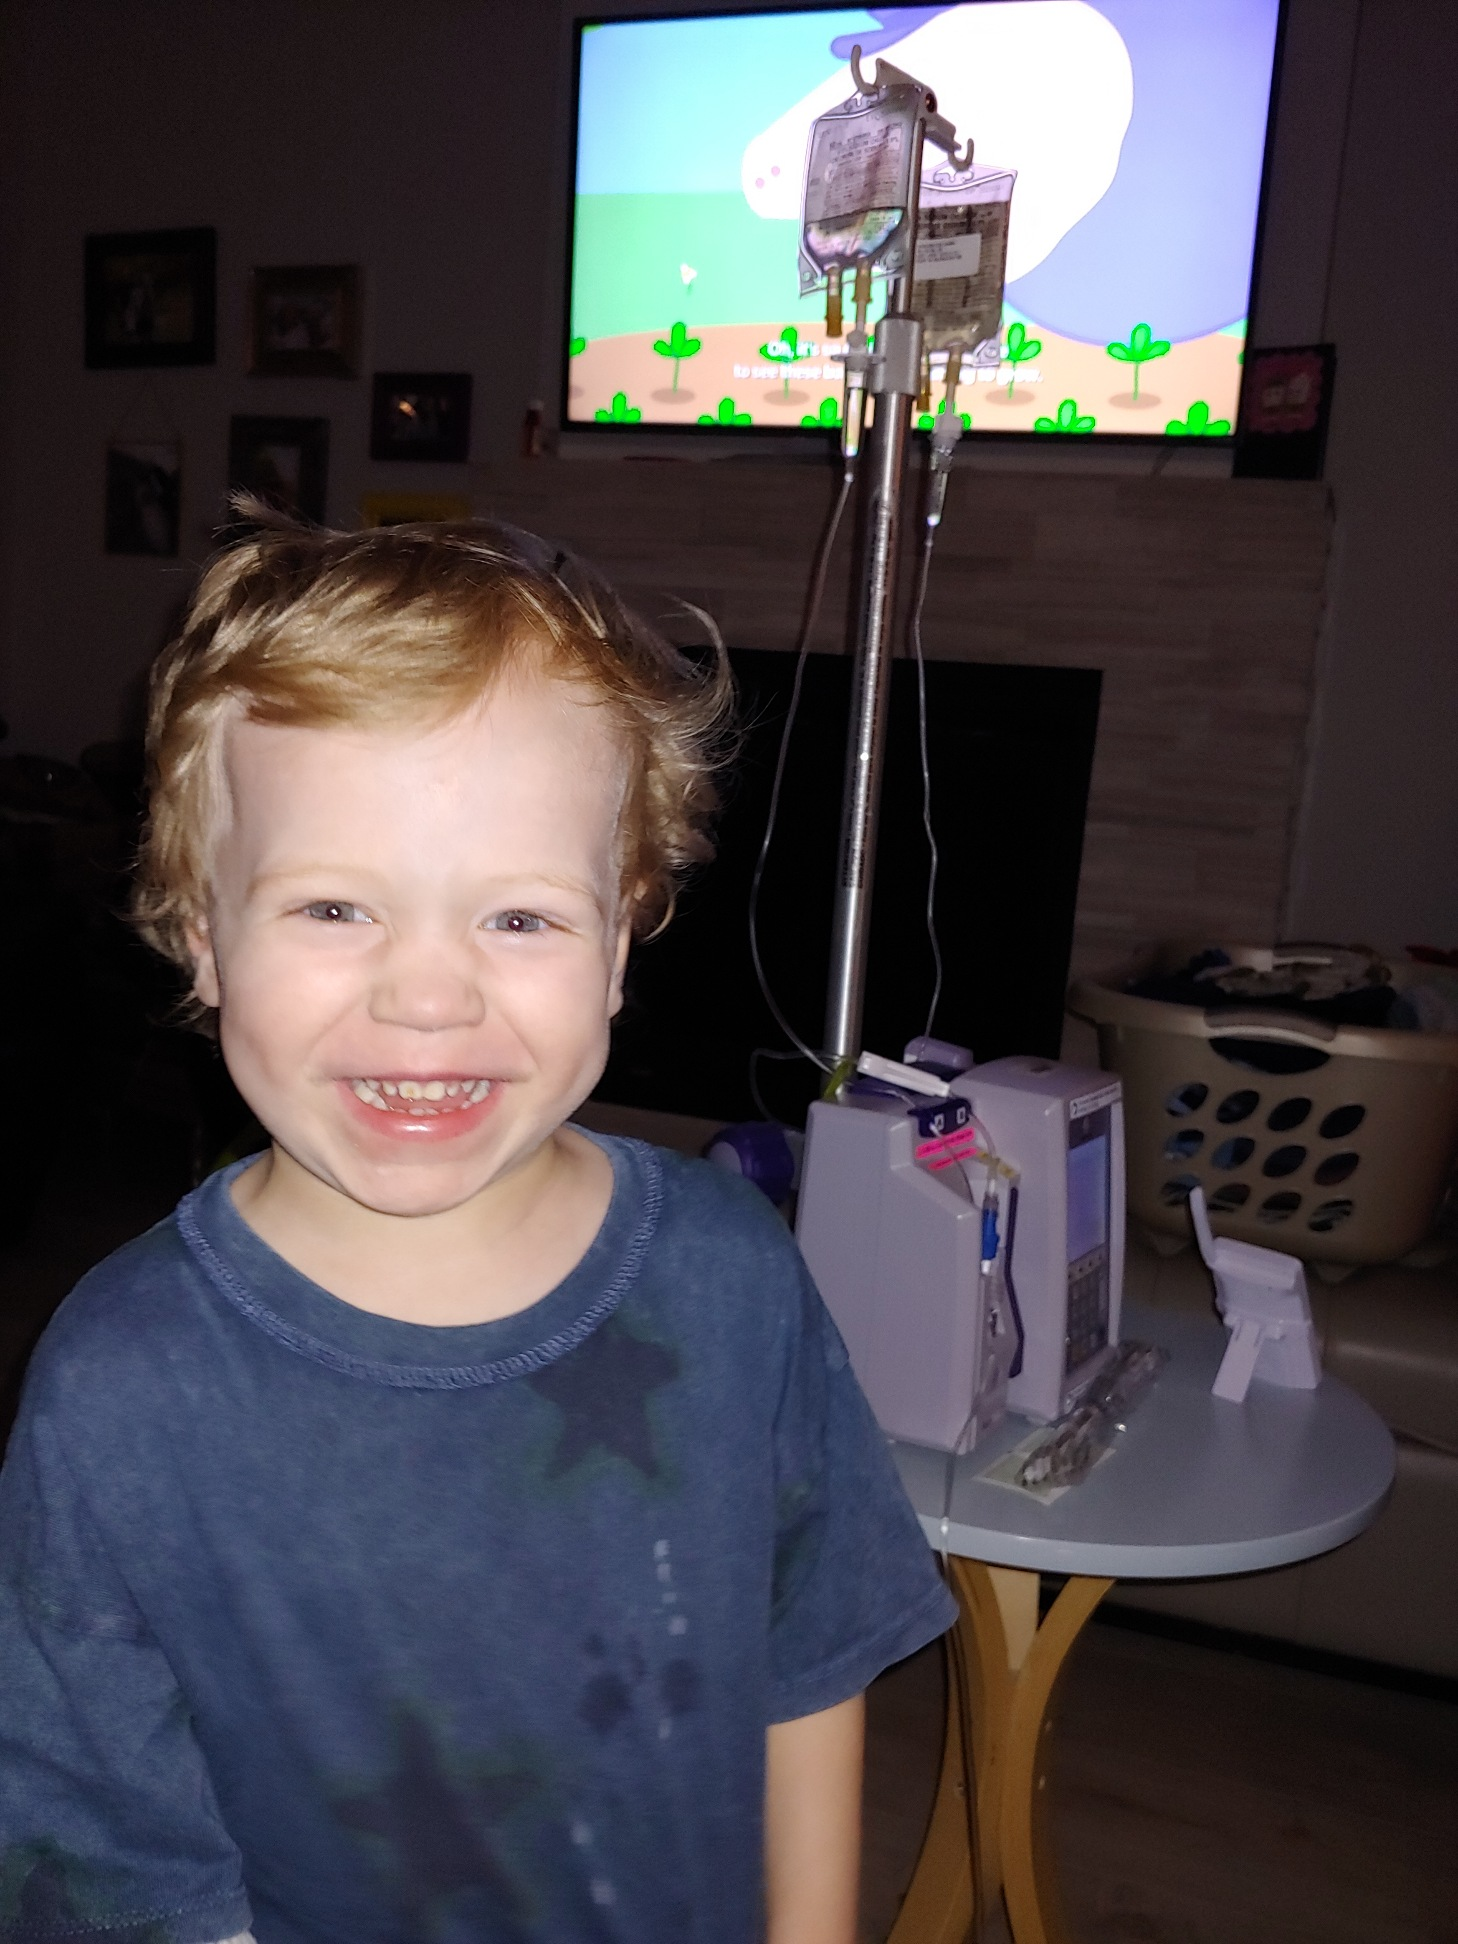 Cameron watching Peppa Pig while he gets his Vancomycin.